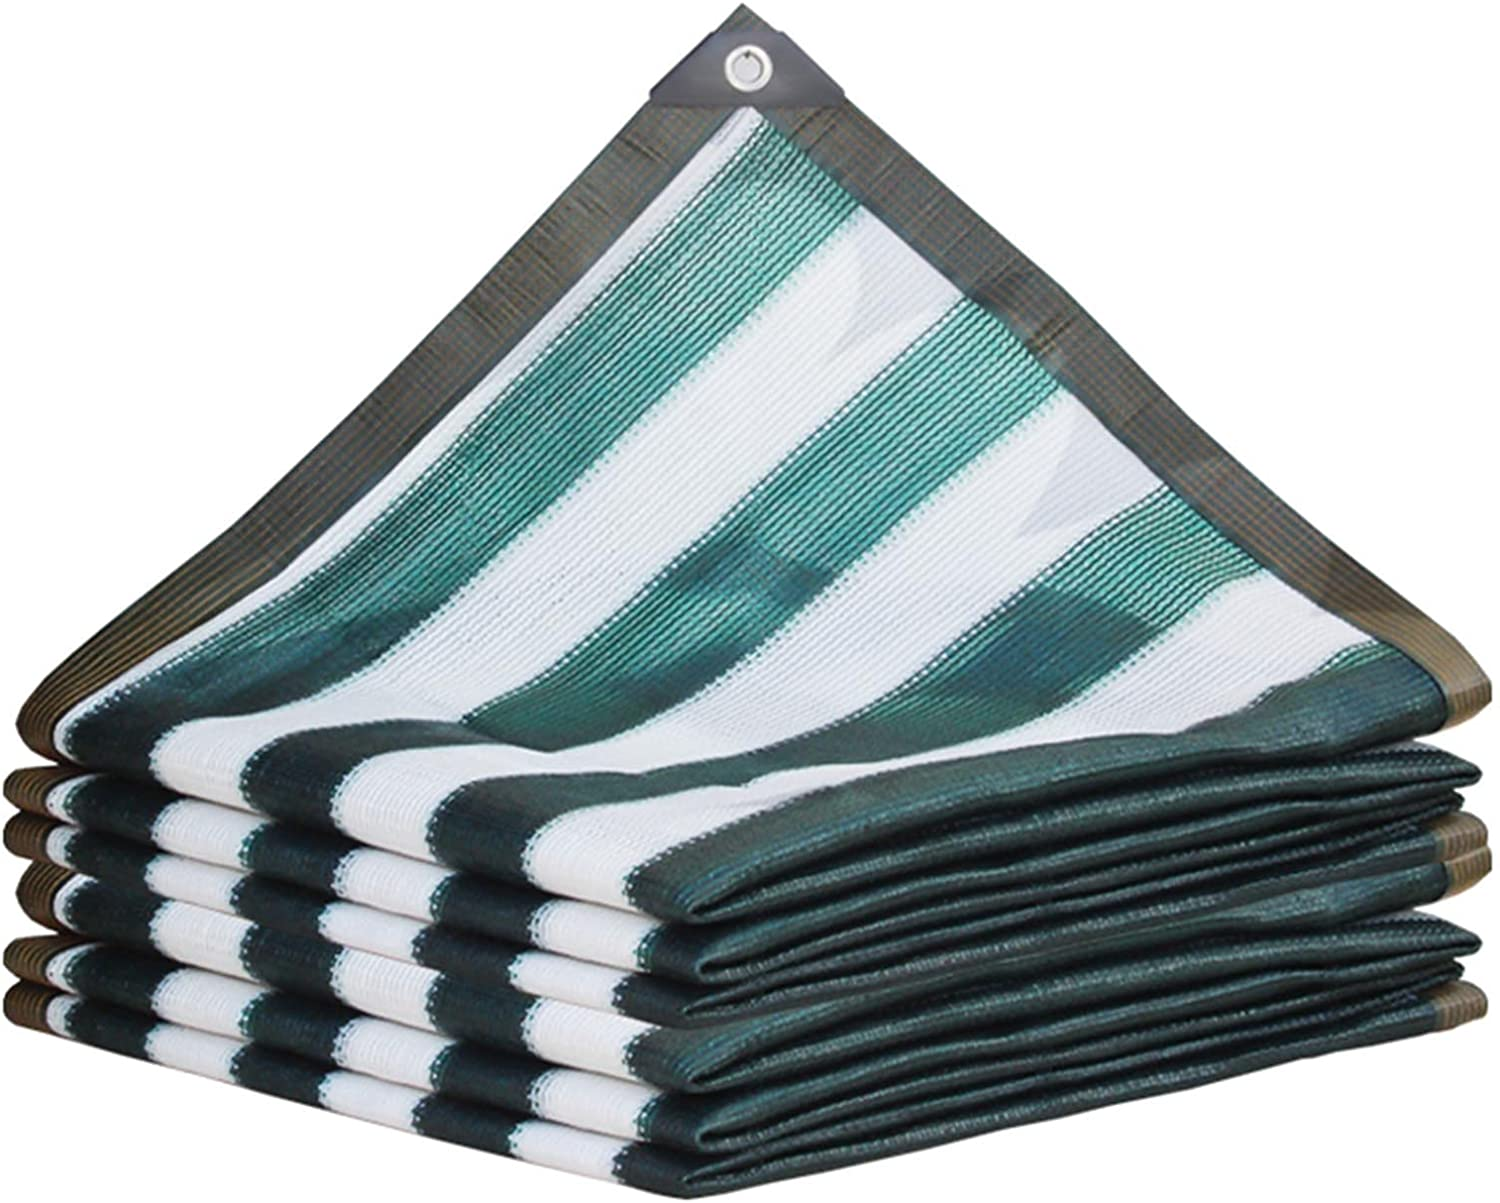 AWSAD Shade Cloth Free Shipping Cheap Bargain Gift Garden Tent UV Opening large release sale R Canopy Sails Sunscreen